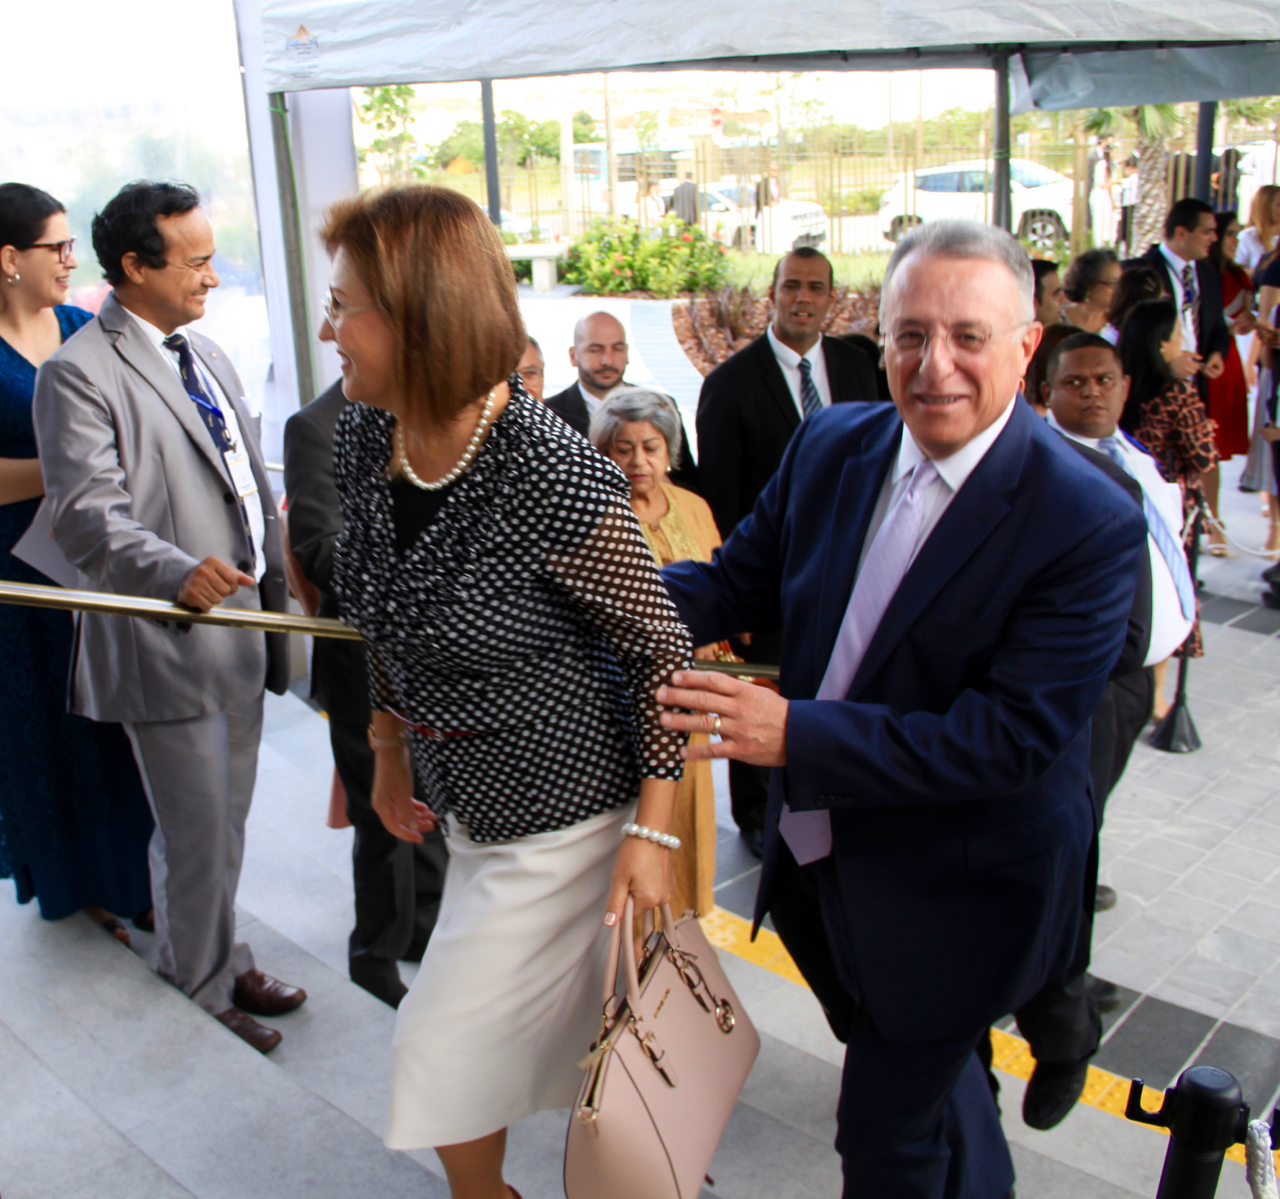 Elder Ulisses Soares of the Quorum of the Twelve Apostles and his wife, Sister Rosana Soares, arrive at the Fortaleza Brazil Temple on the morning of its dedication on June 2, 2019.